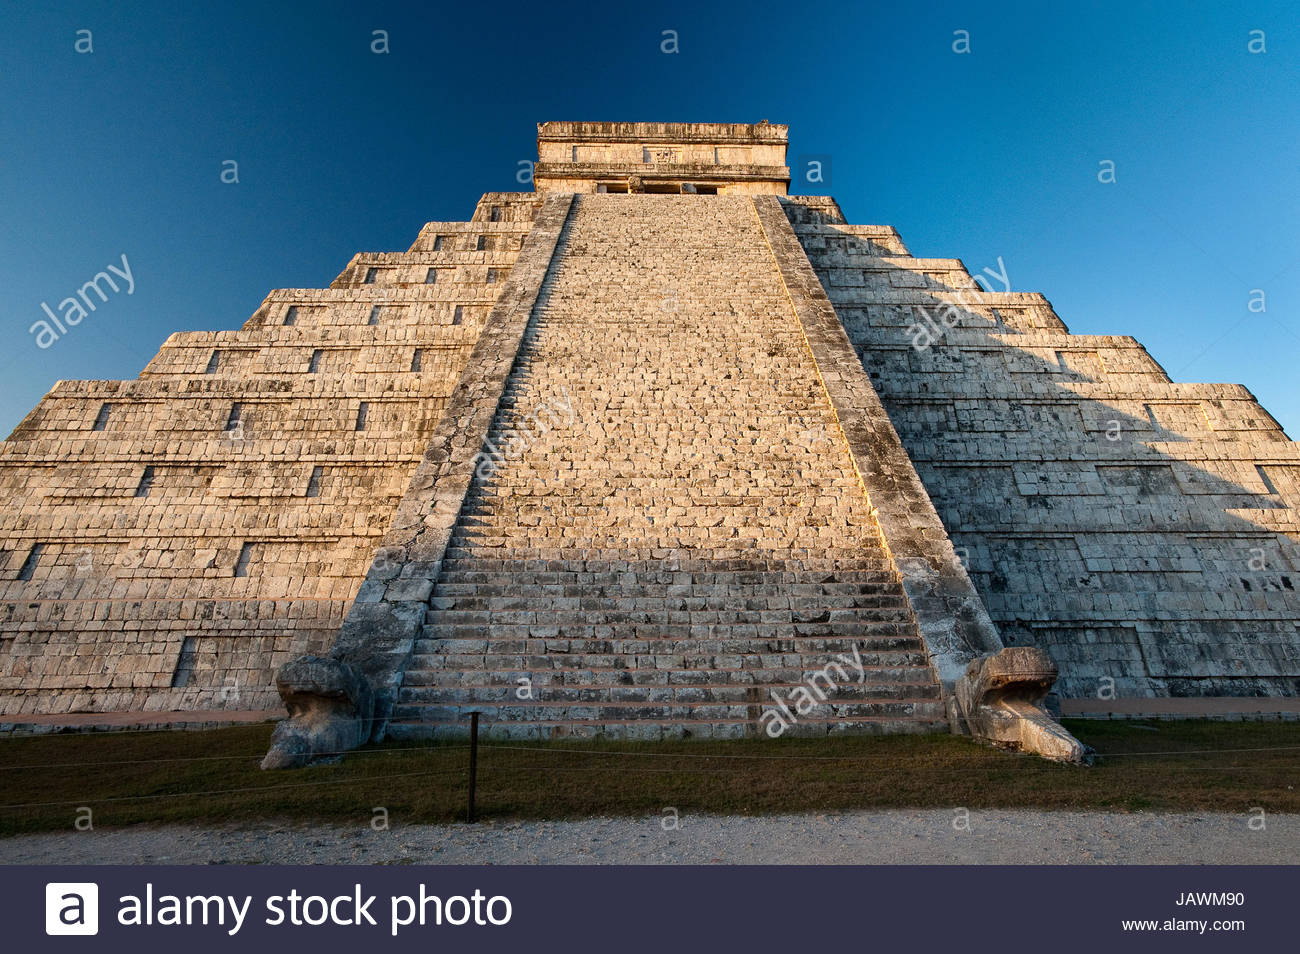 The Castillo at Chichen Itza. - Stock Image